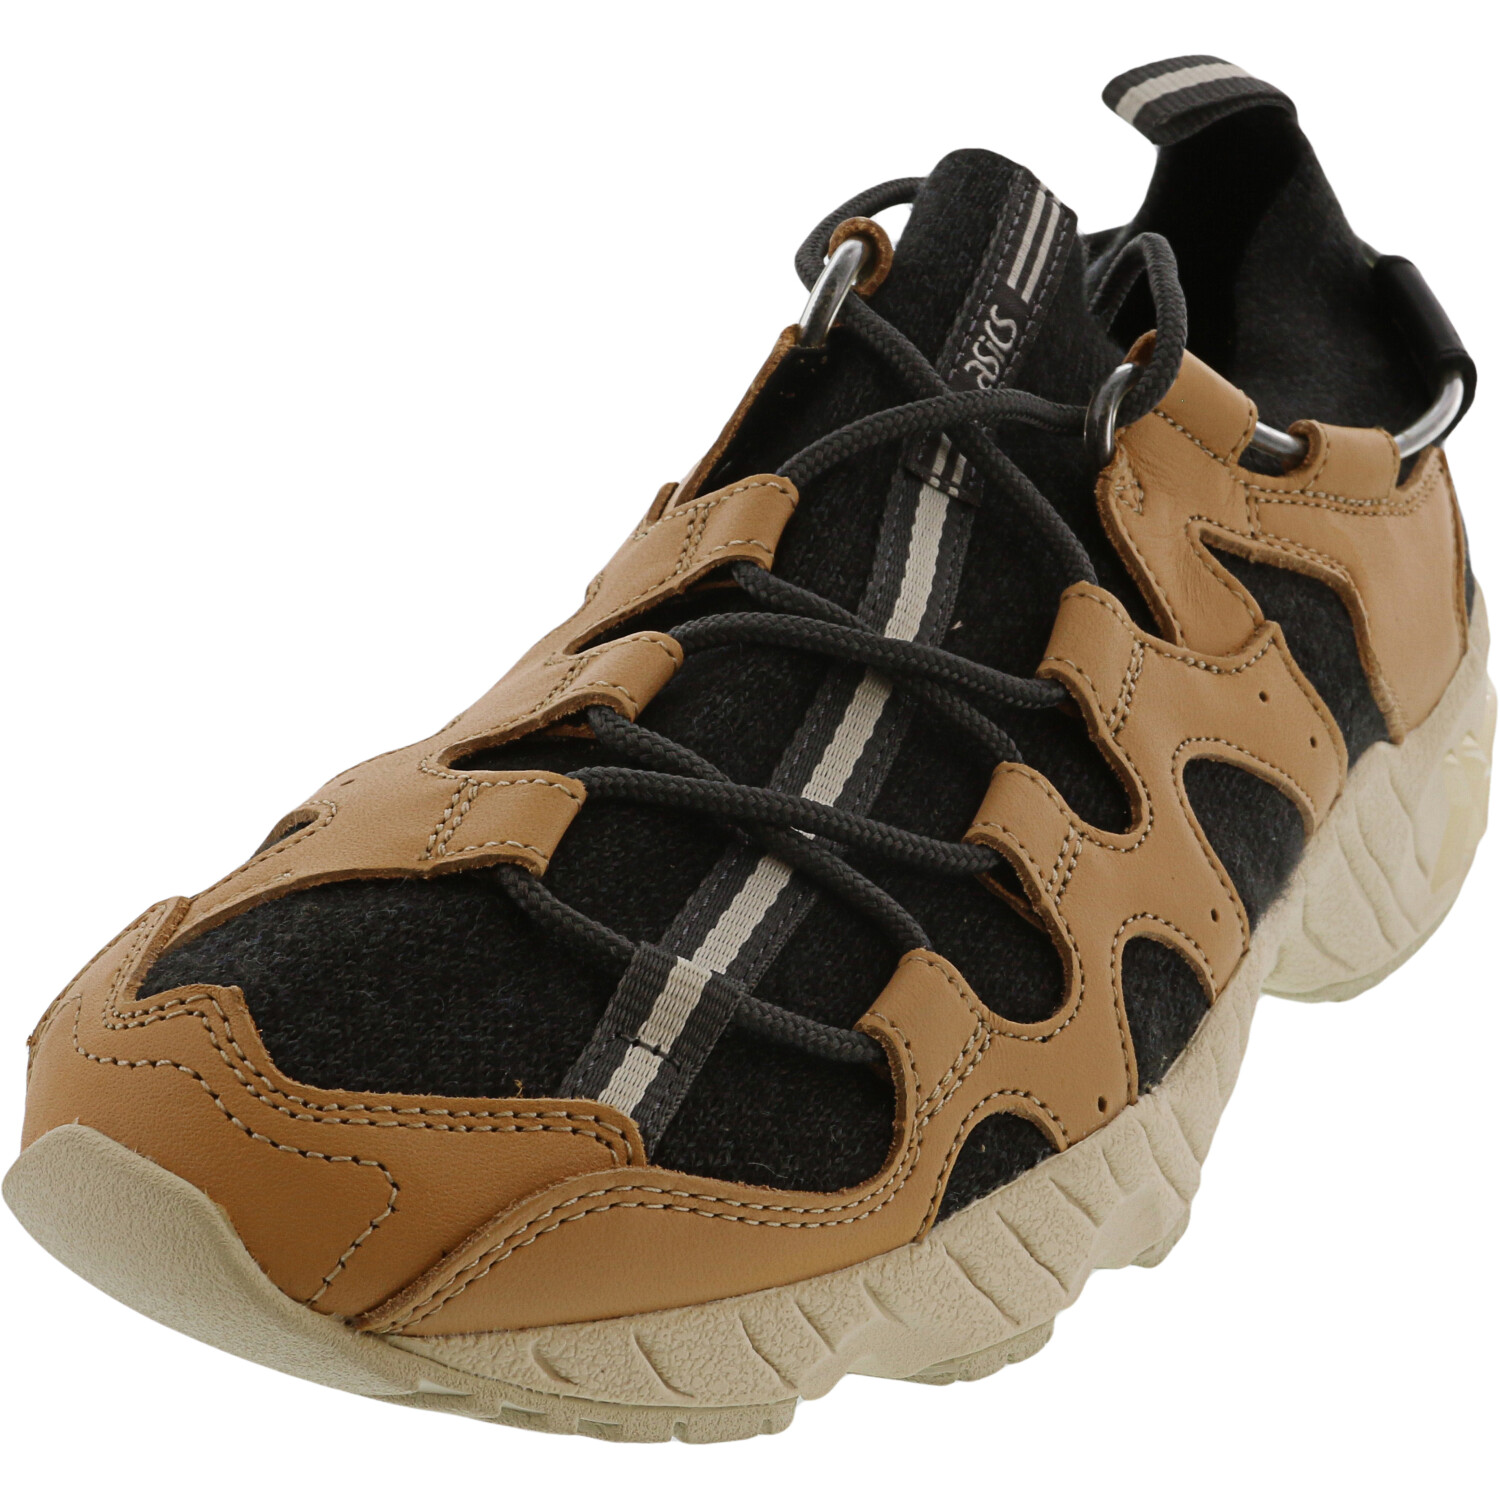 Asics Men's Gel-Mai Knit Carbon / Evening Sand Ankle-High Leather Sneaker - 7.5M